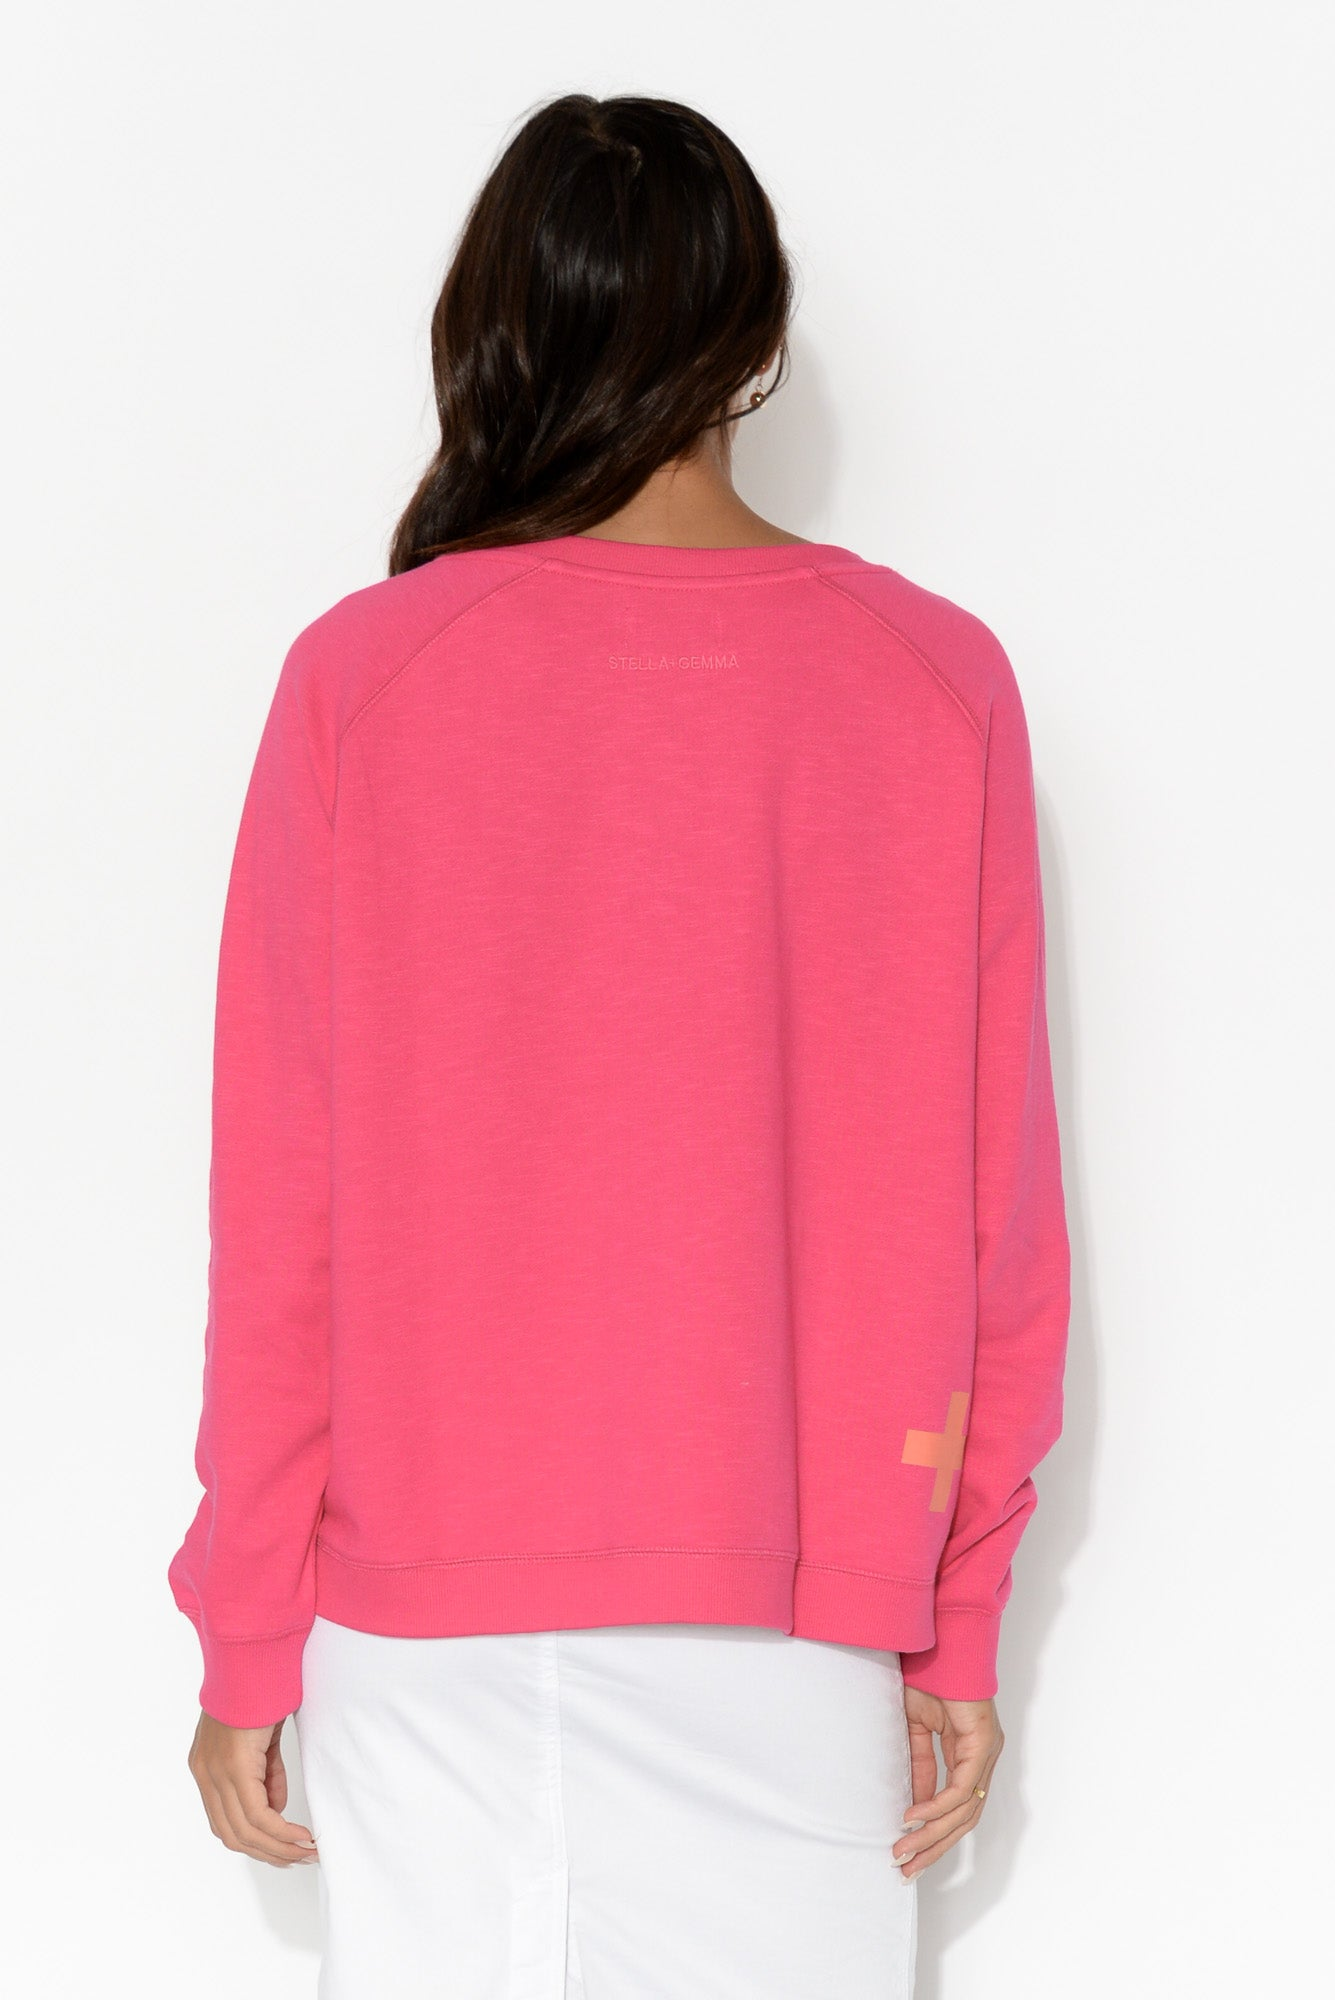 Hot Pink Star Jumper